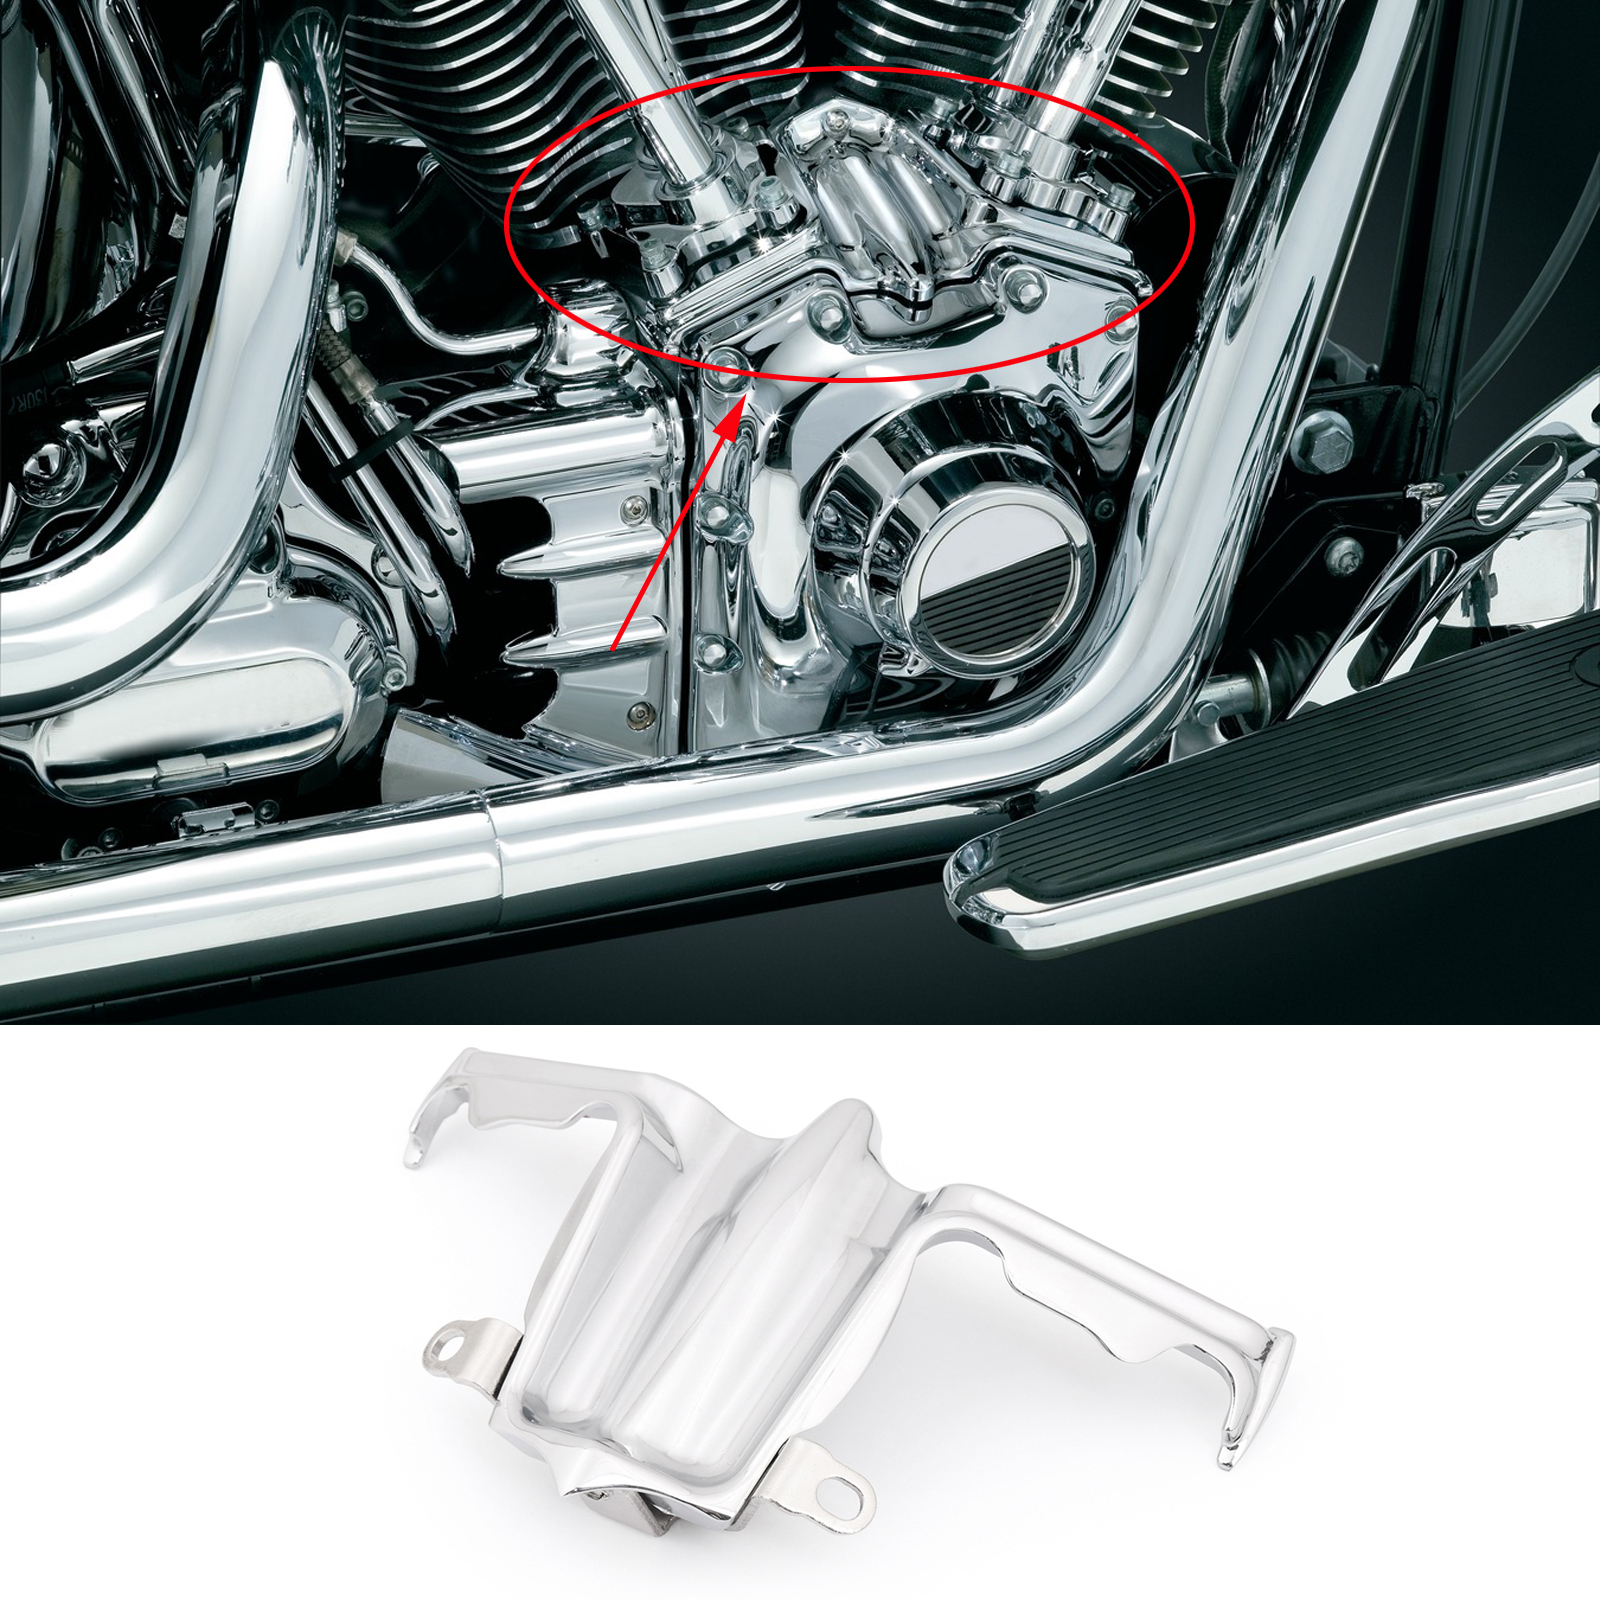 Lifter Block Accent Cover for Harley Twin Cam 02-16 Road Glide Chrome Tappet